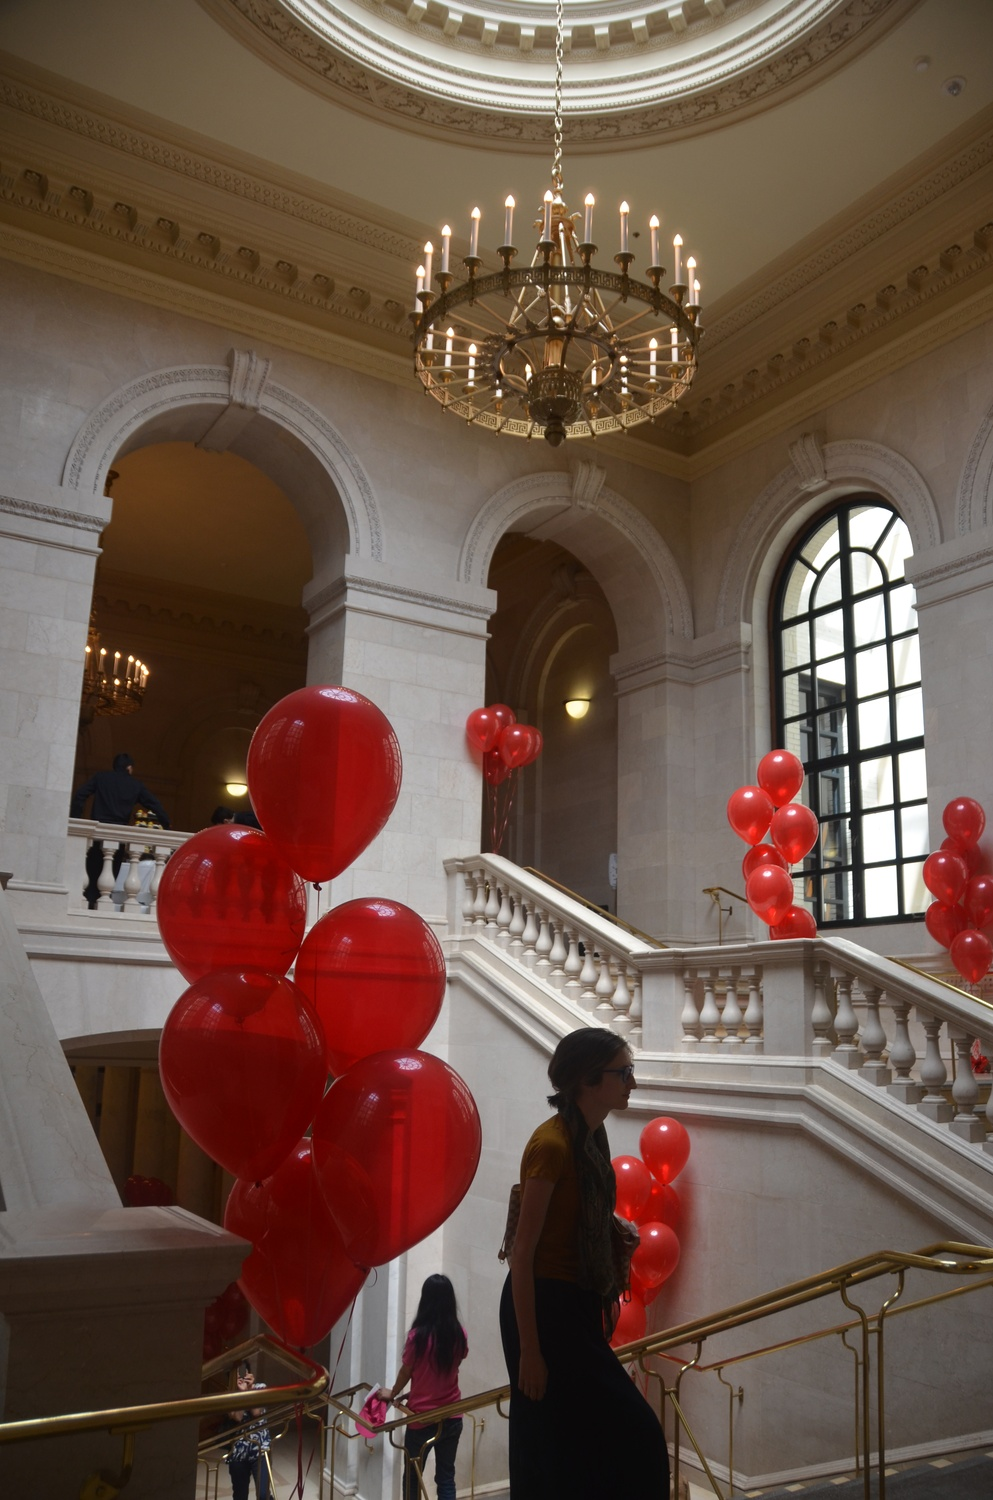 Visitors walk among red balloons at Widener Library last June. Administrators commemorated the 100th anniversary of the library's founding with a celebration.